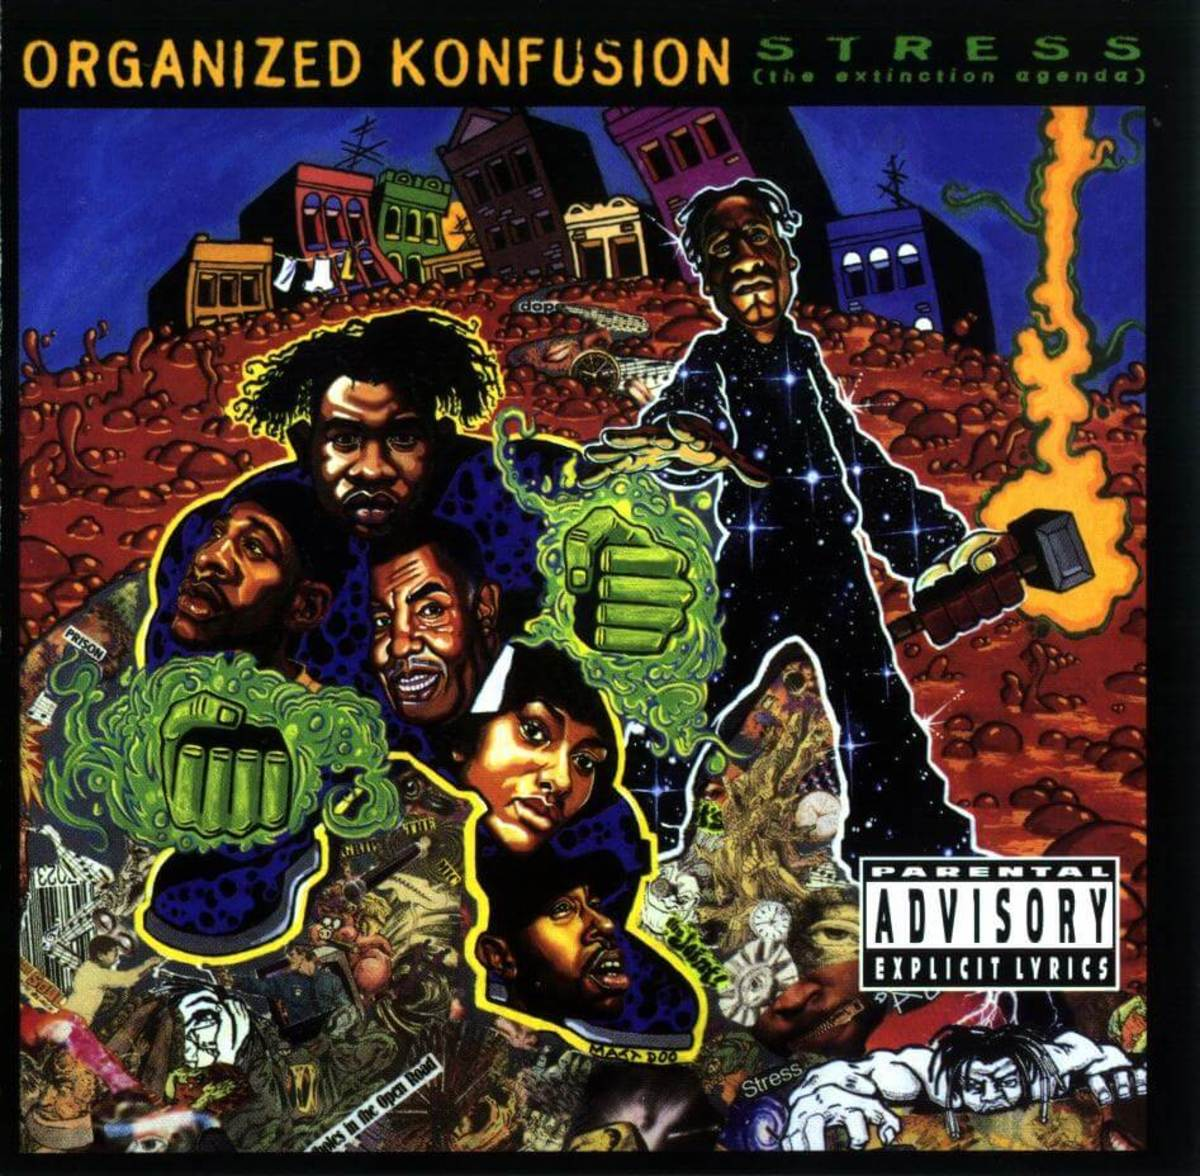 organized-konfusion-stress-cover